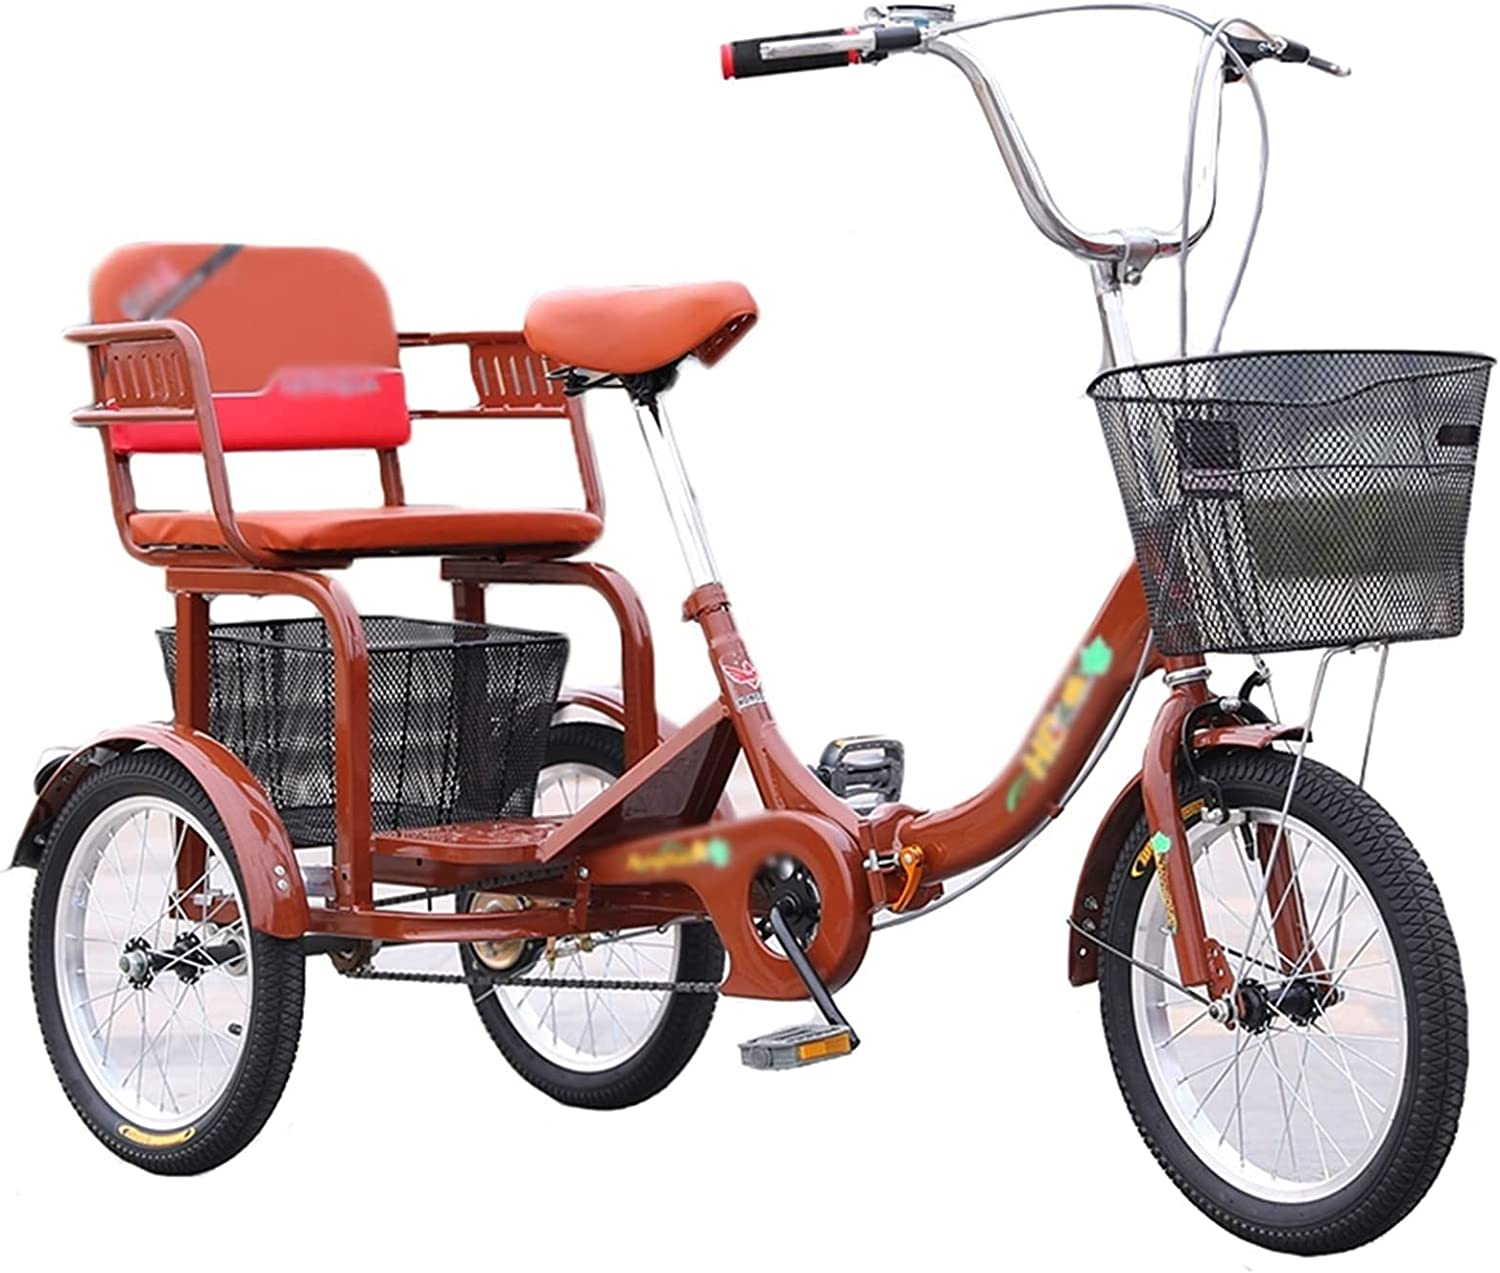 YXYH Stable Folding Adult Tricycles 16 Inch Trike Speed Adjust Super Save money Special SALE held 1